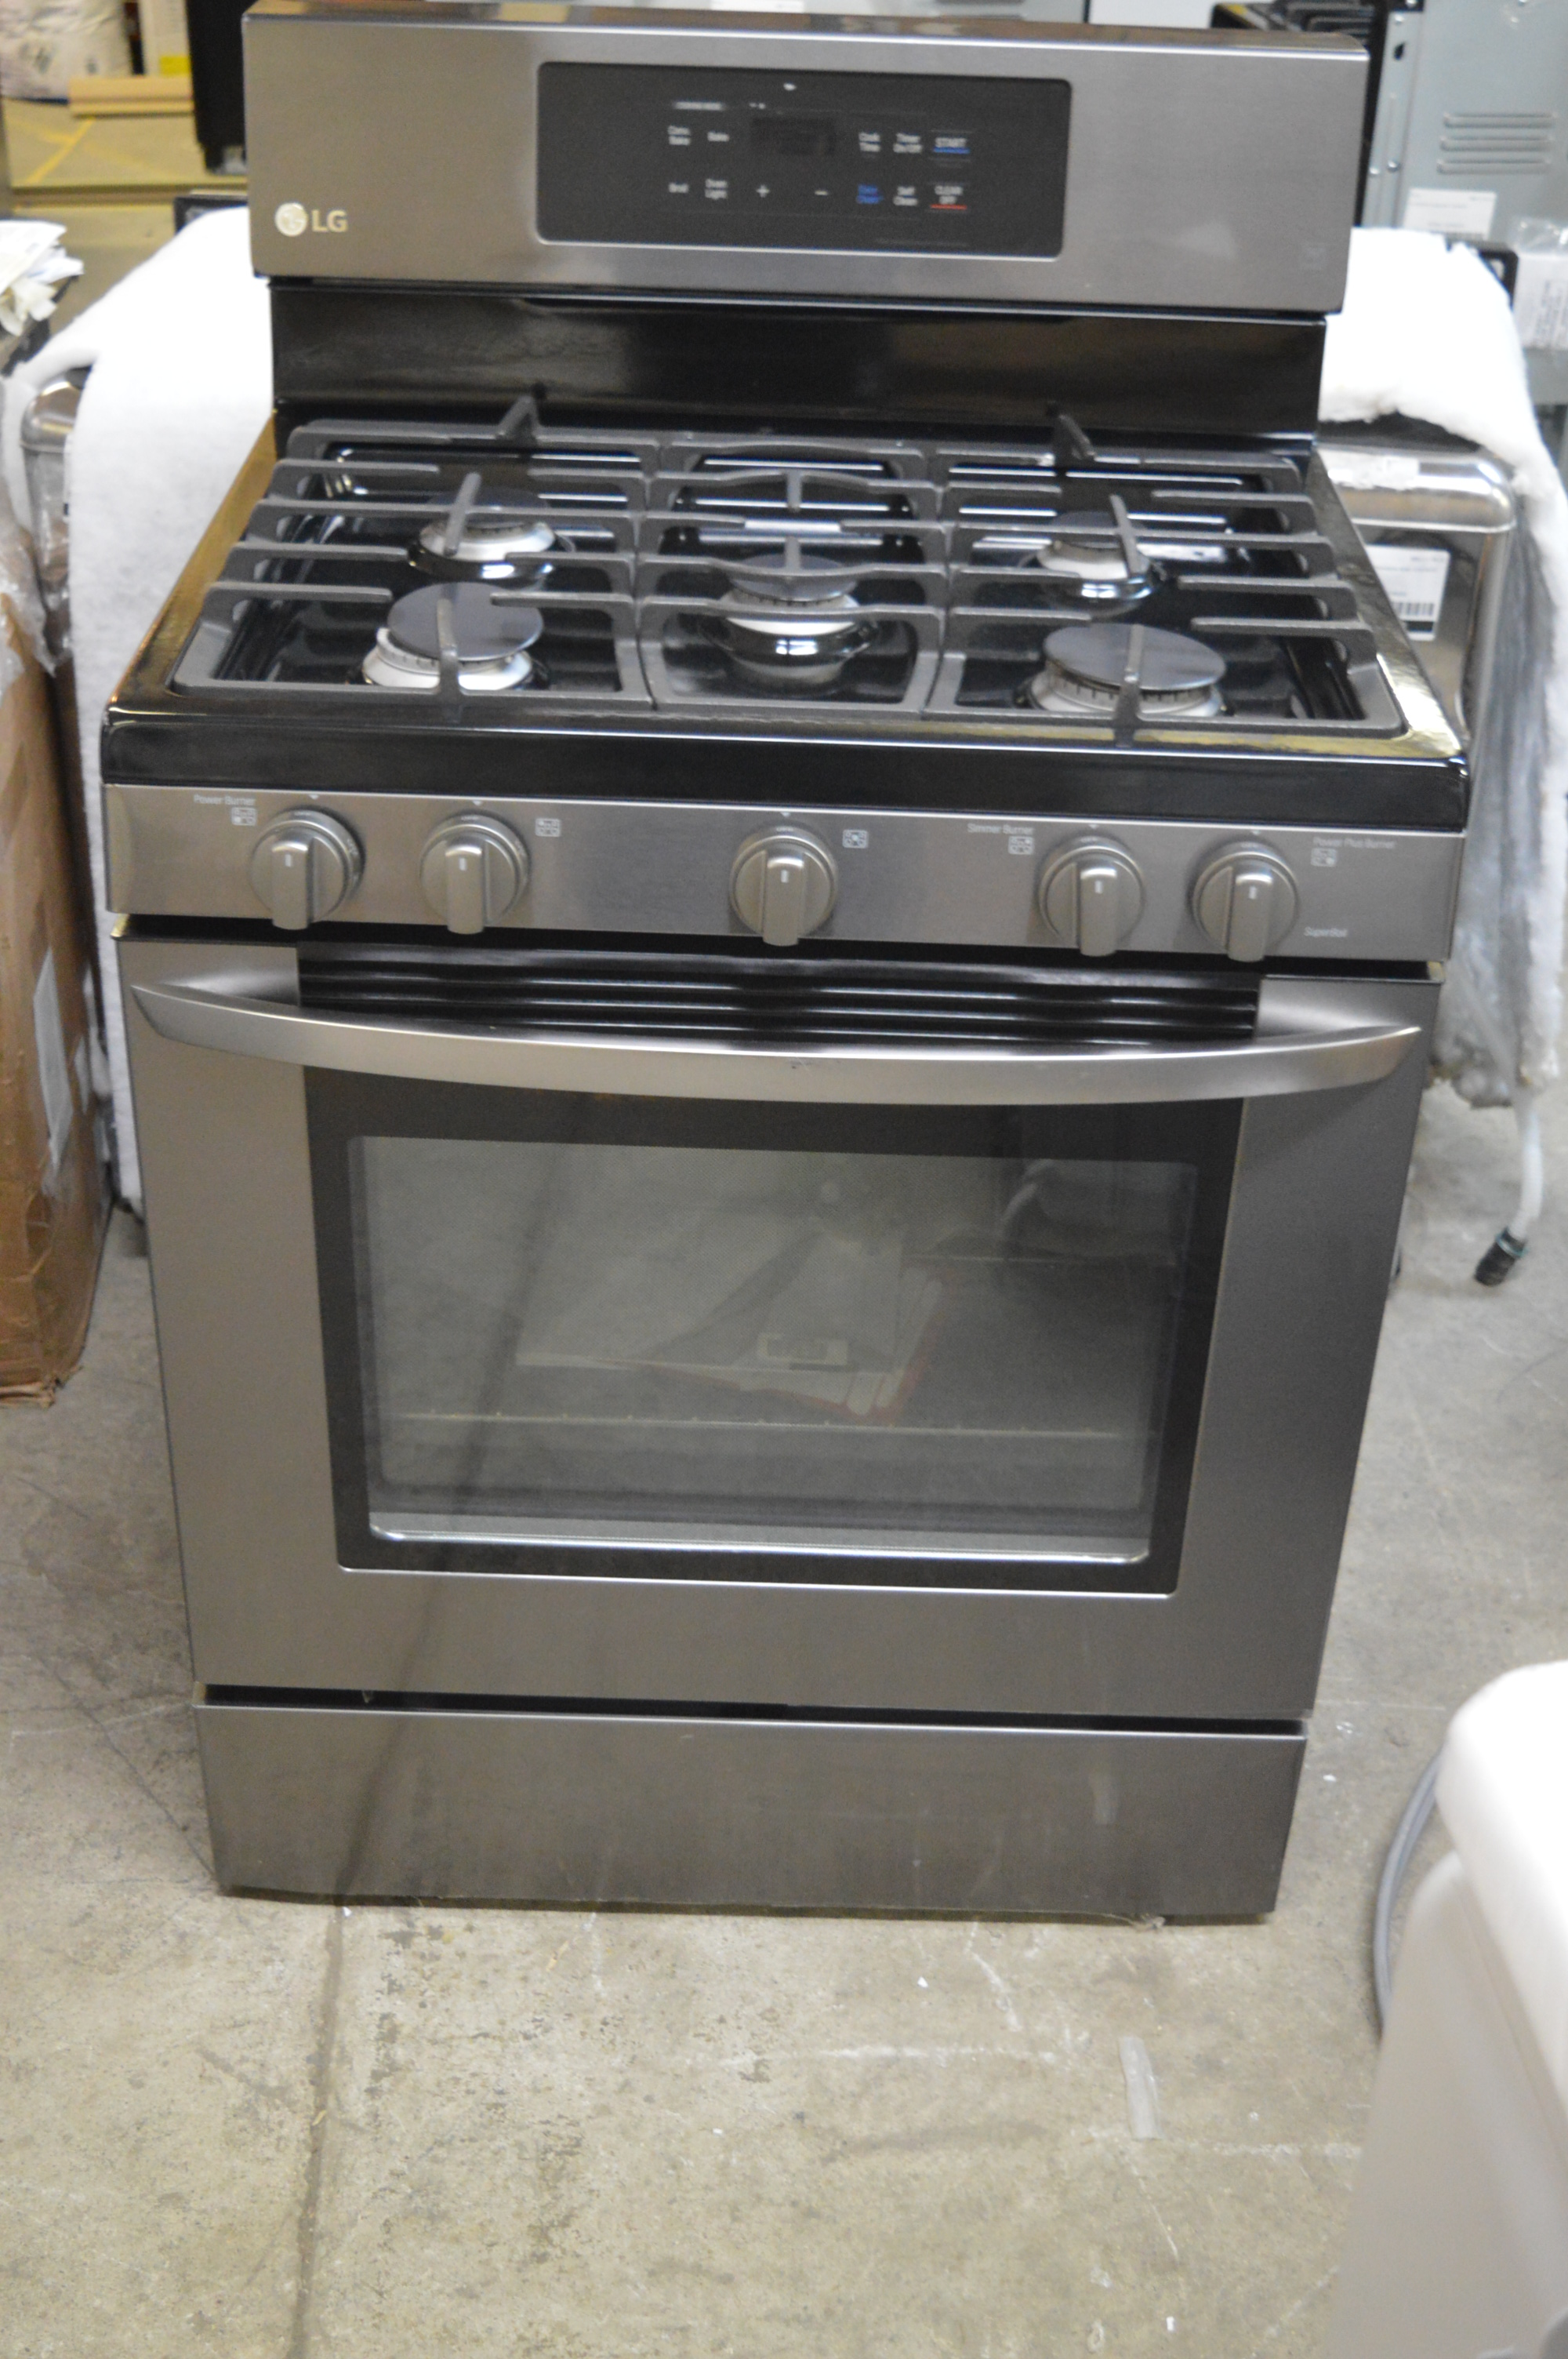 LG LRG3081BD Black Stainless Steel Gas Ovens (Gas and Electric) | eBay